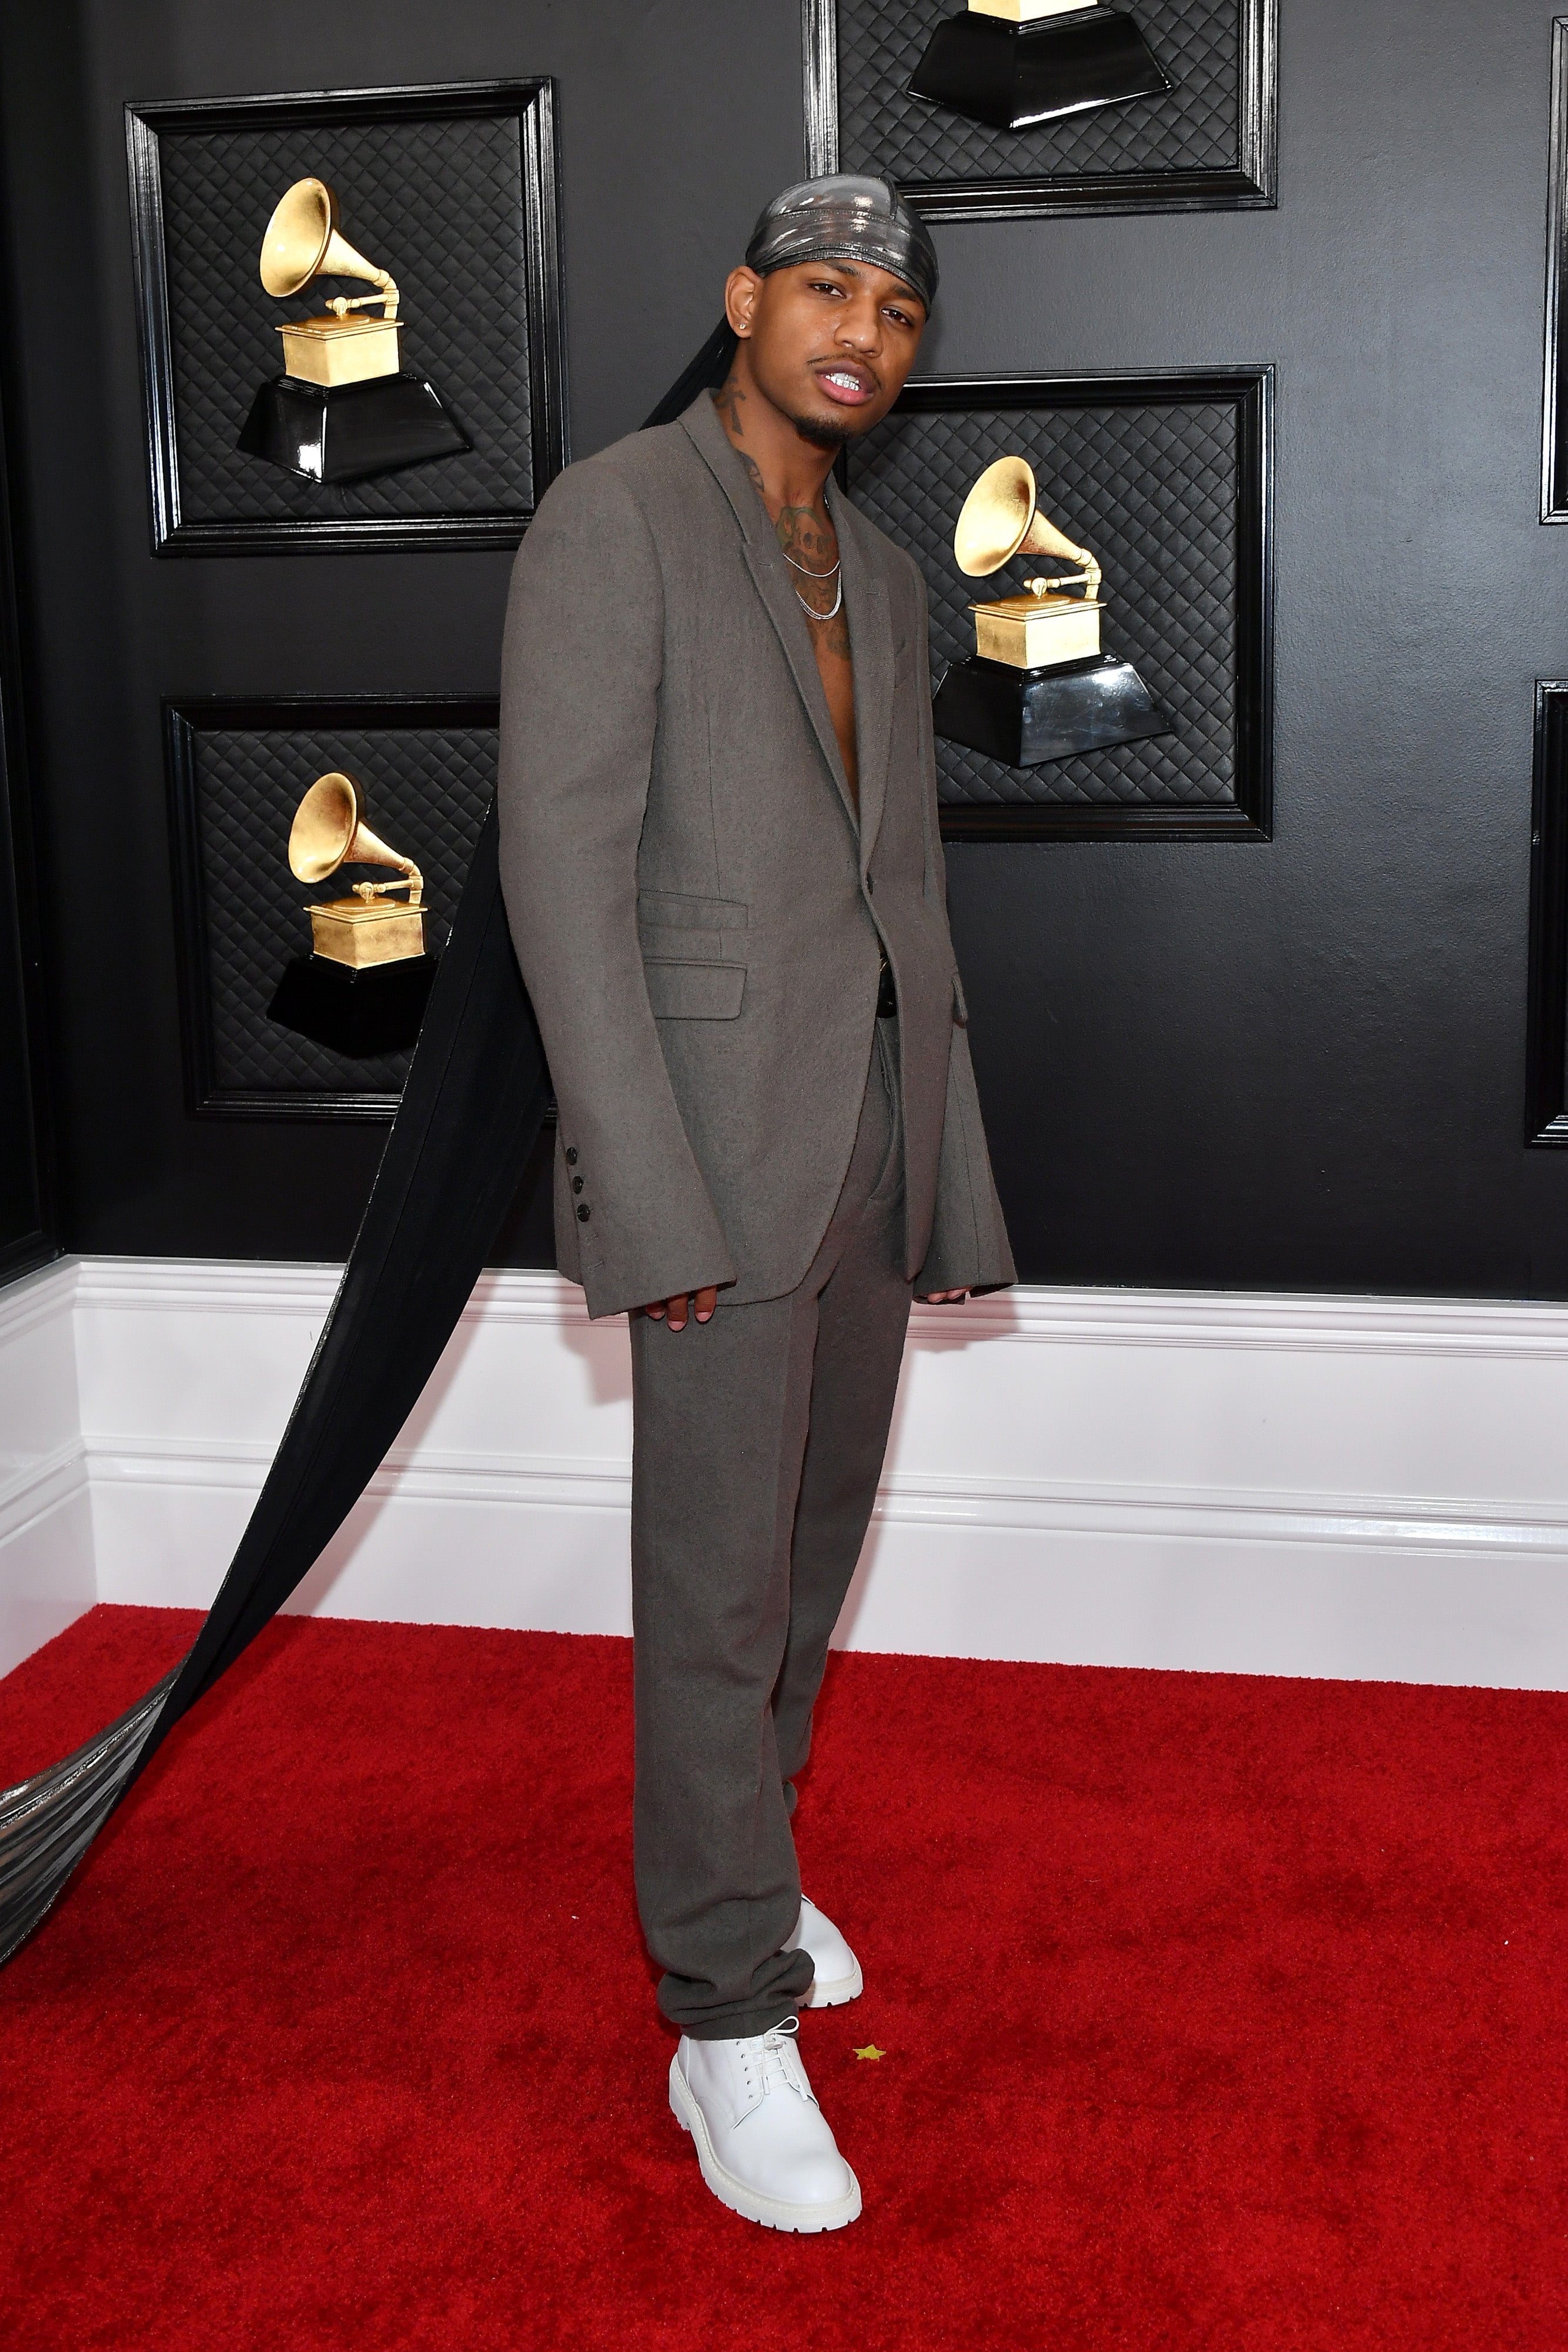 Guapdad 4000 Attends The Grammys In A 10-Foot-Lengthy Durag